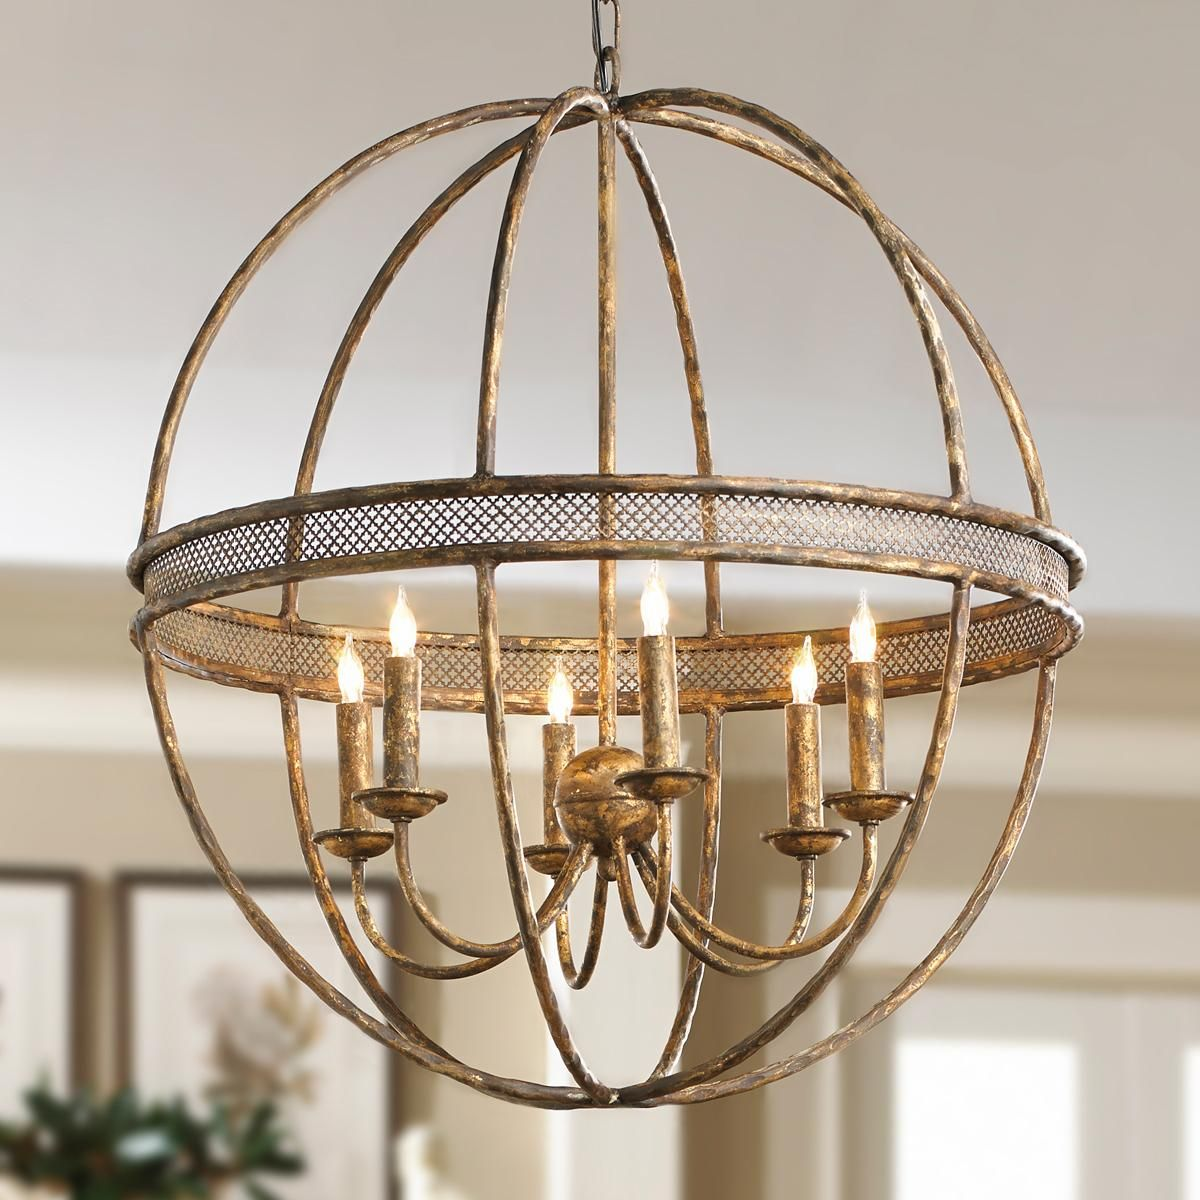 Lattice banded sphere chandelier aged golden lattice adds the lattice banded sphere chandelier aged golden lattice adds the regal touch to this open metal sphere with 6 light chandelier inside arubaitofo Choice Image